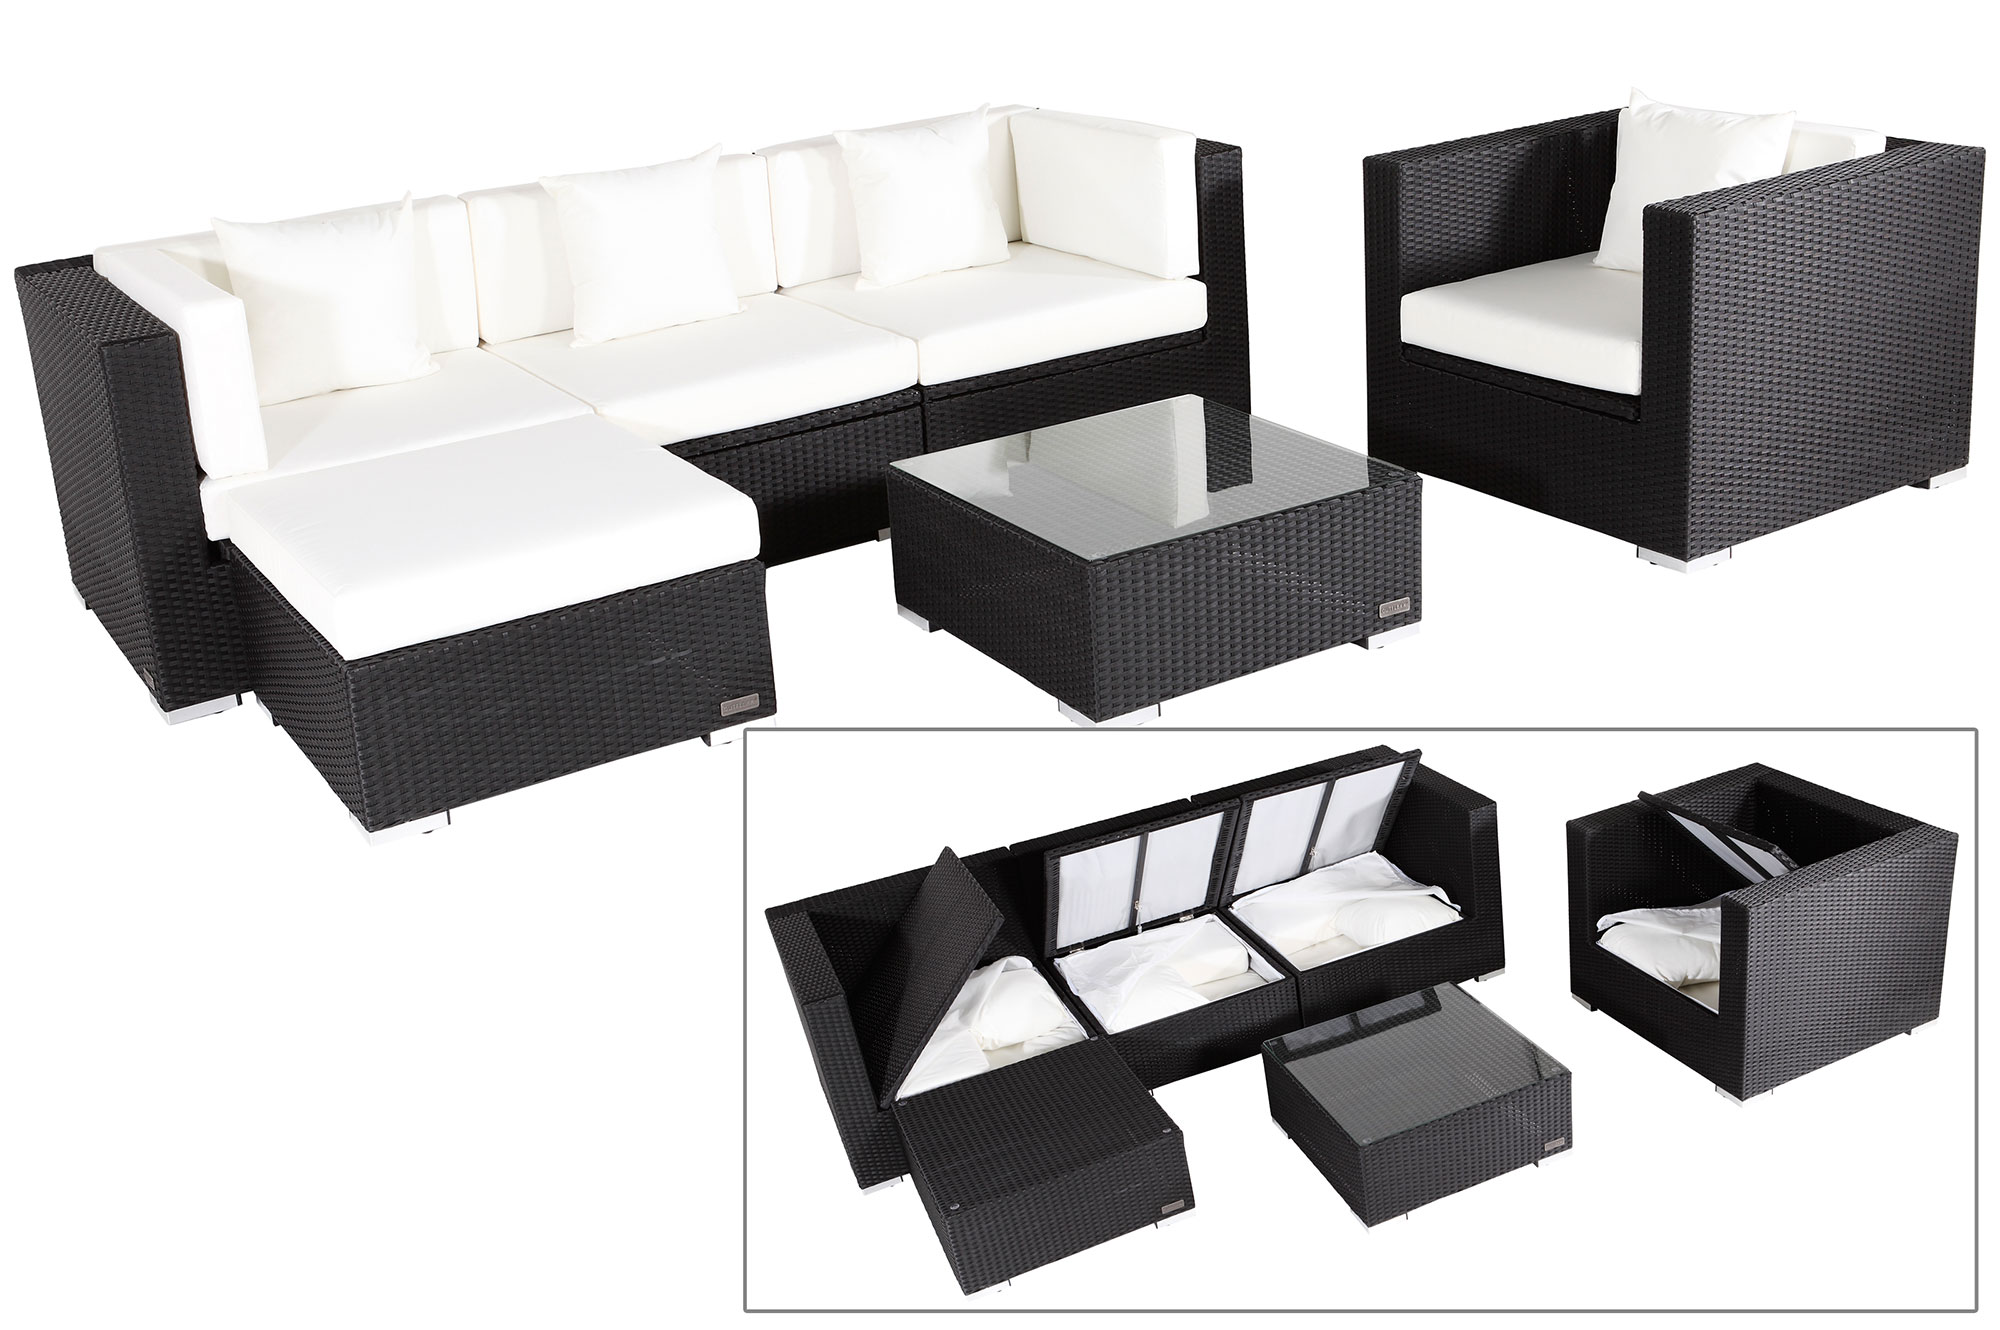 outflexx sitzgruppe aus polyrattan mit kissenboxfunktion inkl polster f r 5 pers schwarz. Black Bedroom Furniture Sets. Home Design Ideas